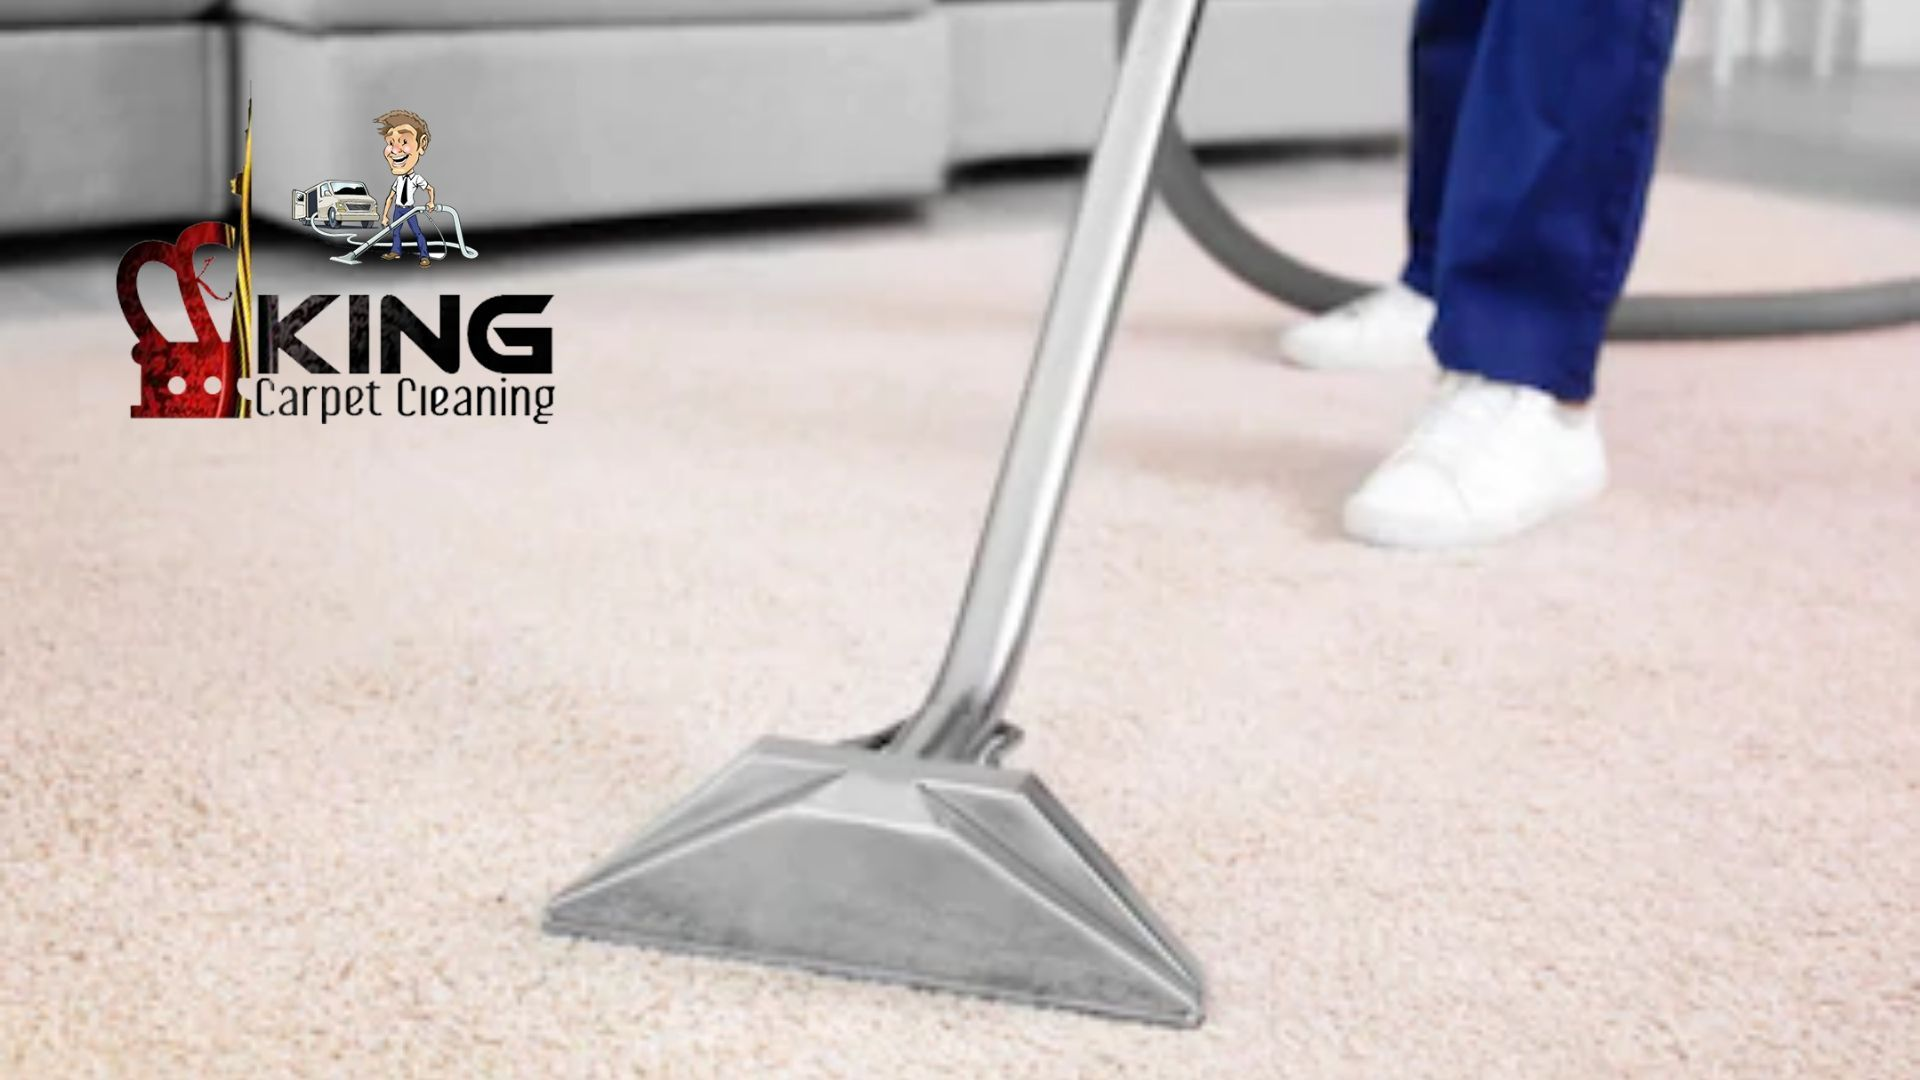 Mattrress Cleaning In Brampton In 2020 Mattress Cleaning How To Clean Carpet Cleaning Upholstery